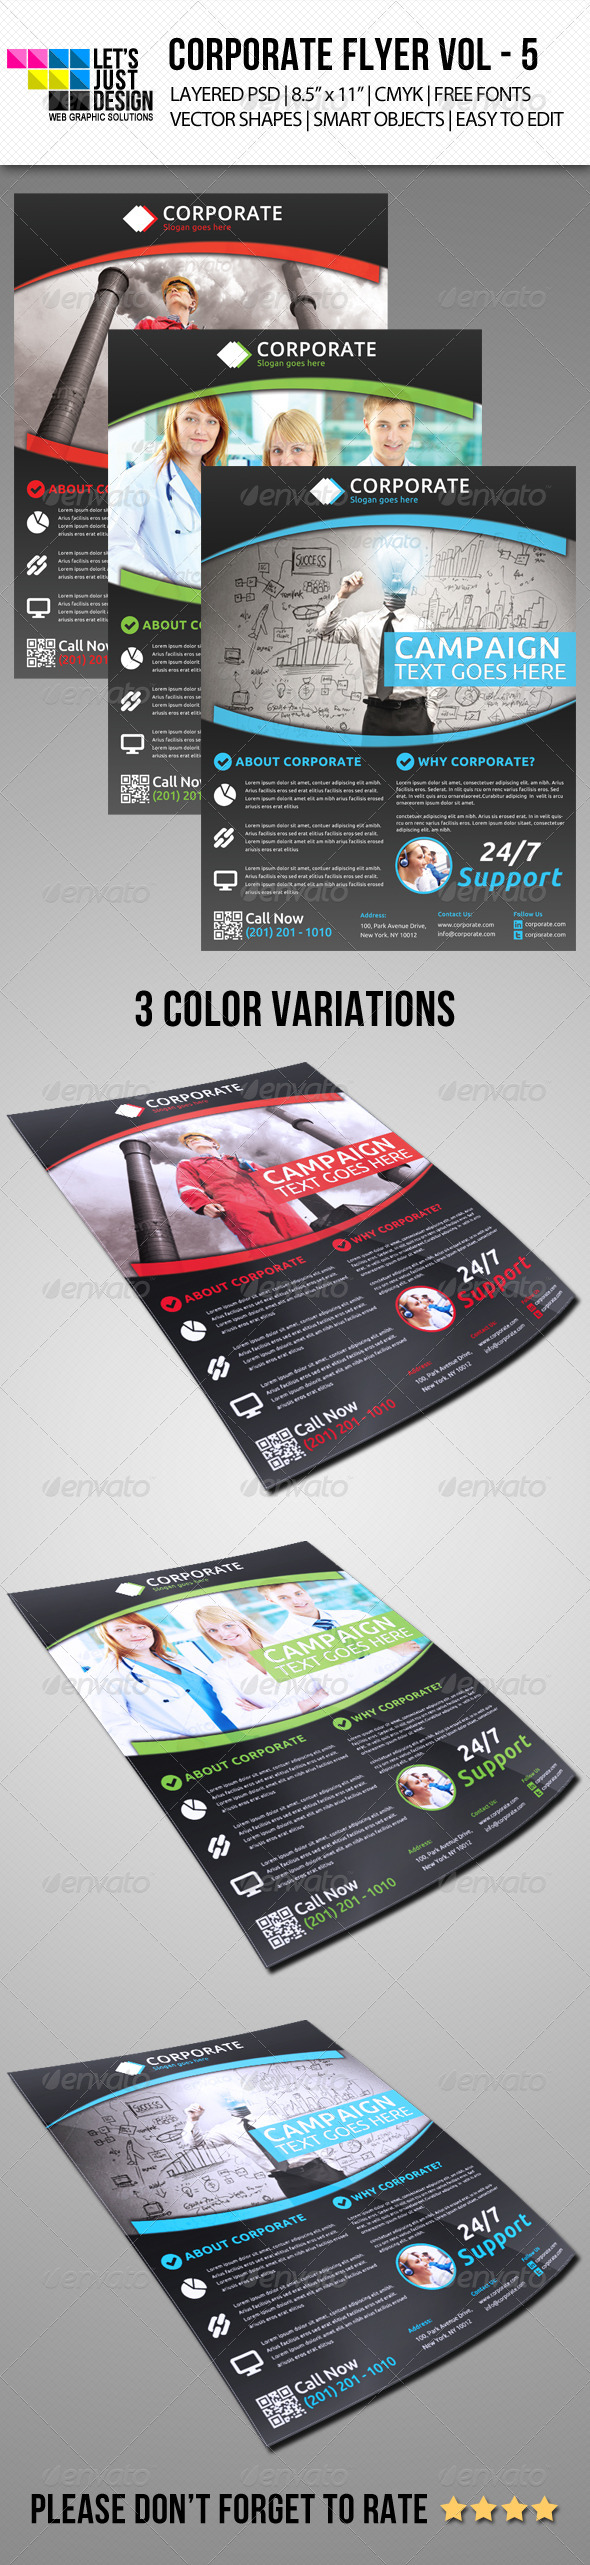 Corporate Flyer Template Vol 5 - Print Templates